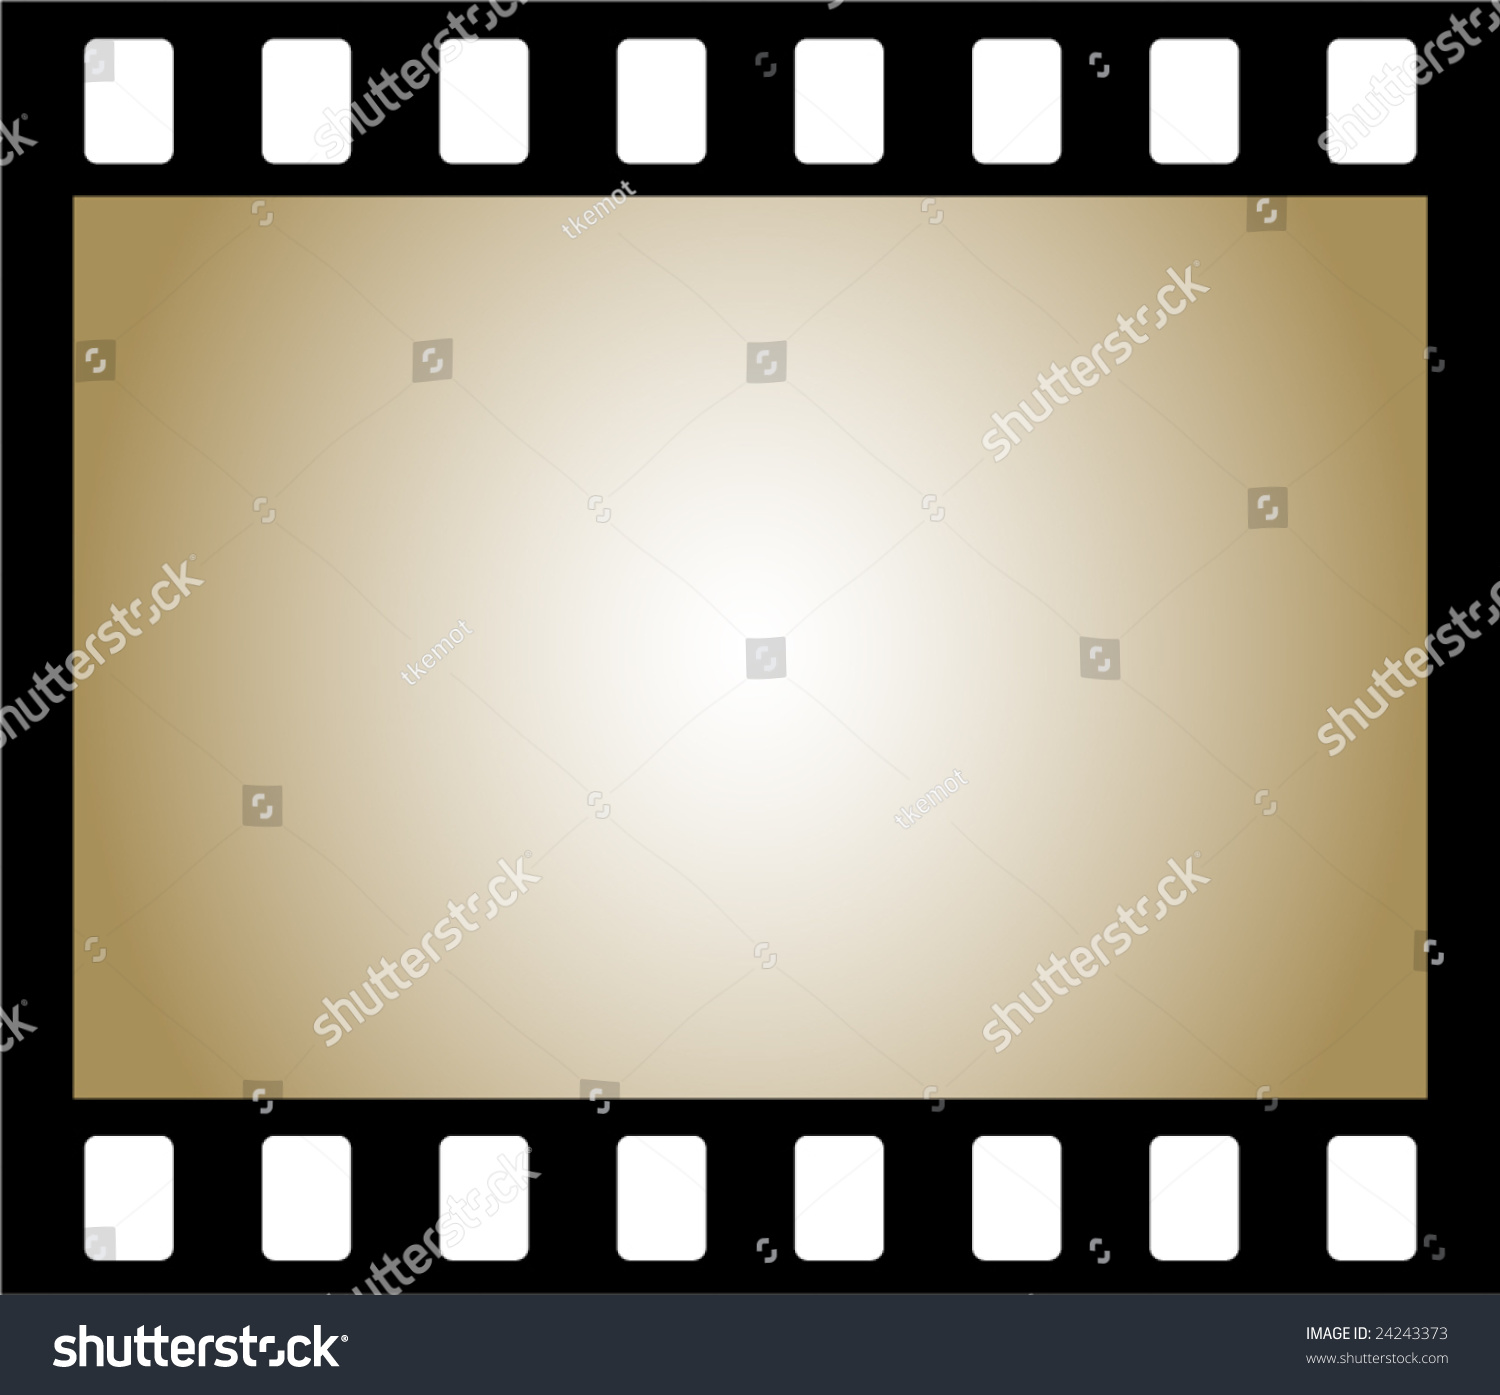 Old negative photo film frame stock vector 24243373 shutterstock old negative photo film frame jeuxipadfo Image collections